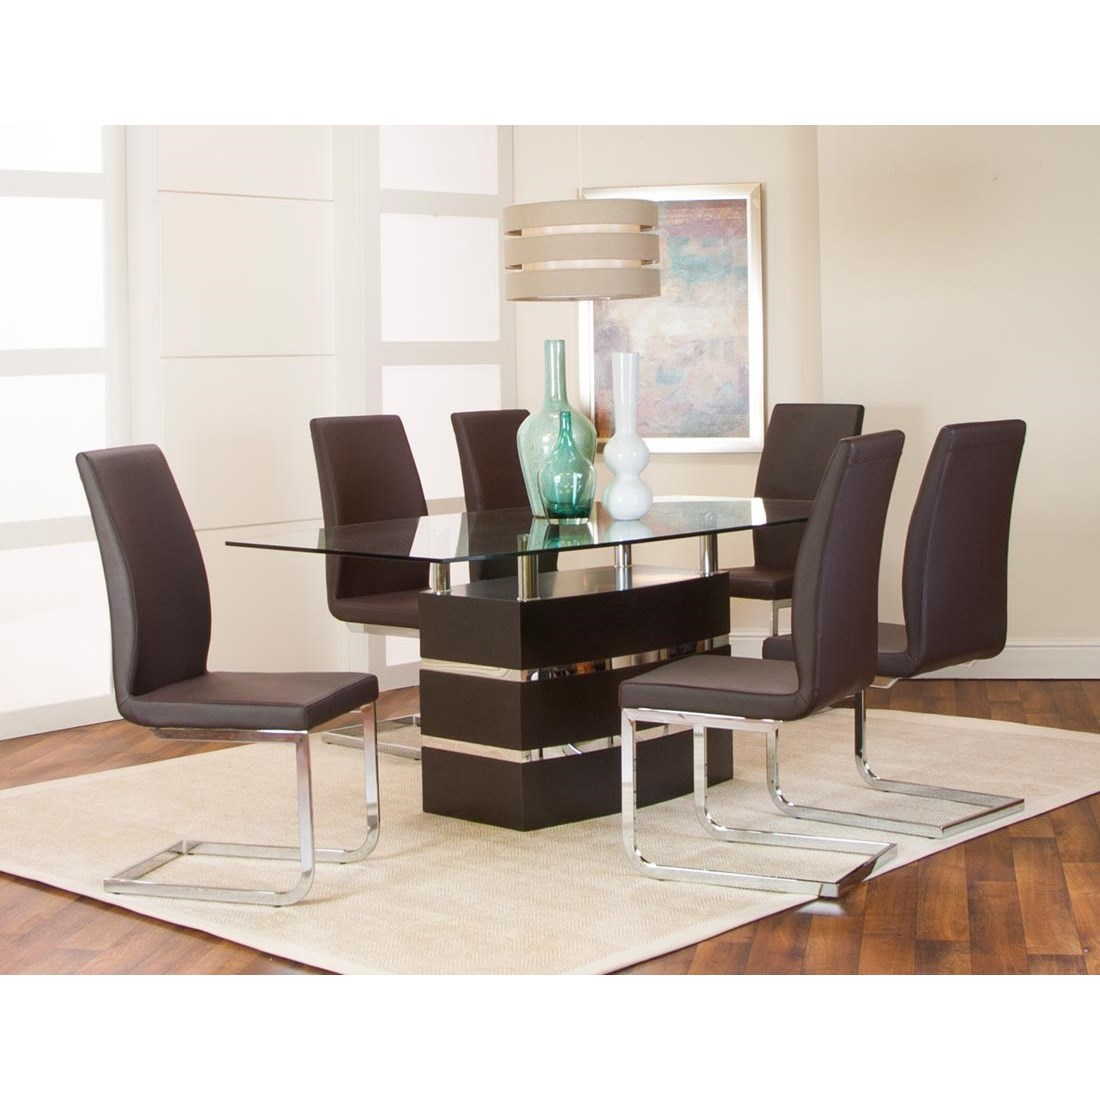 Altair 7-Piece Table and Chair Set by Cramco, Inc at Lapeer Furniture & Mattress Center